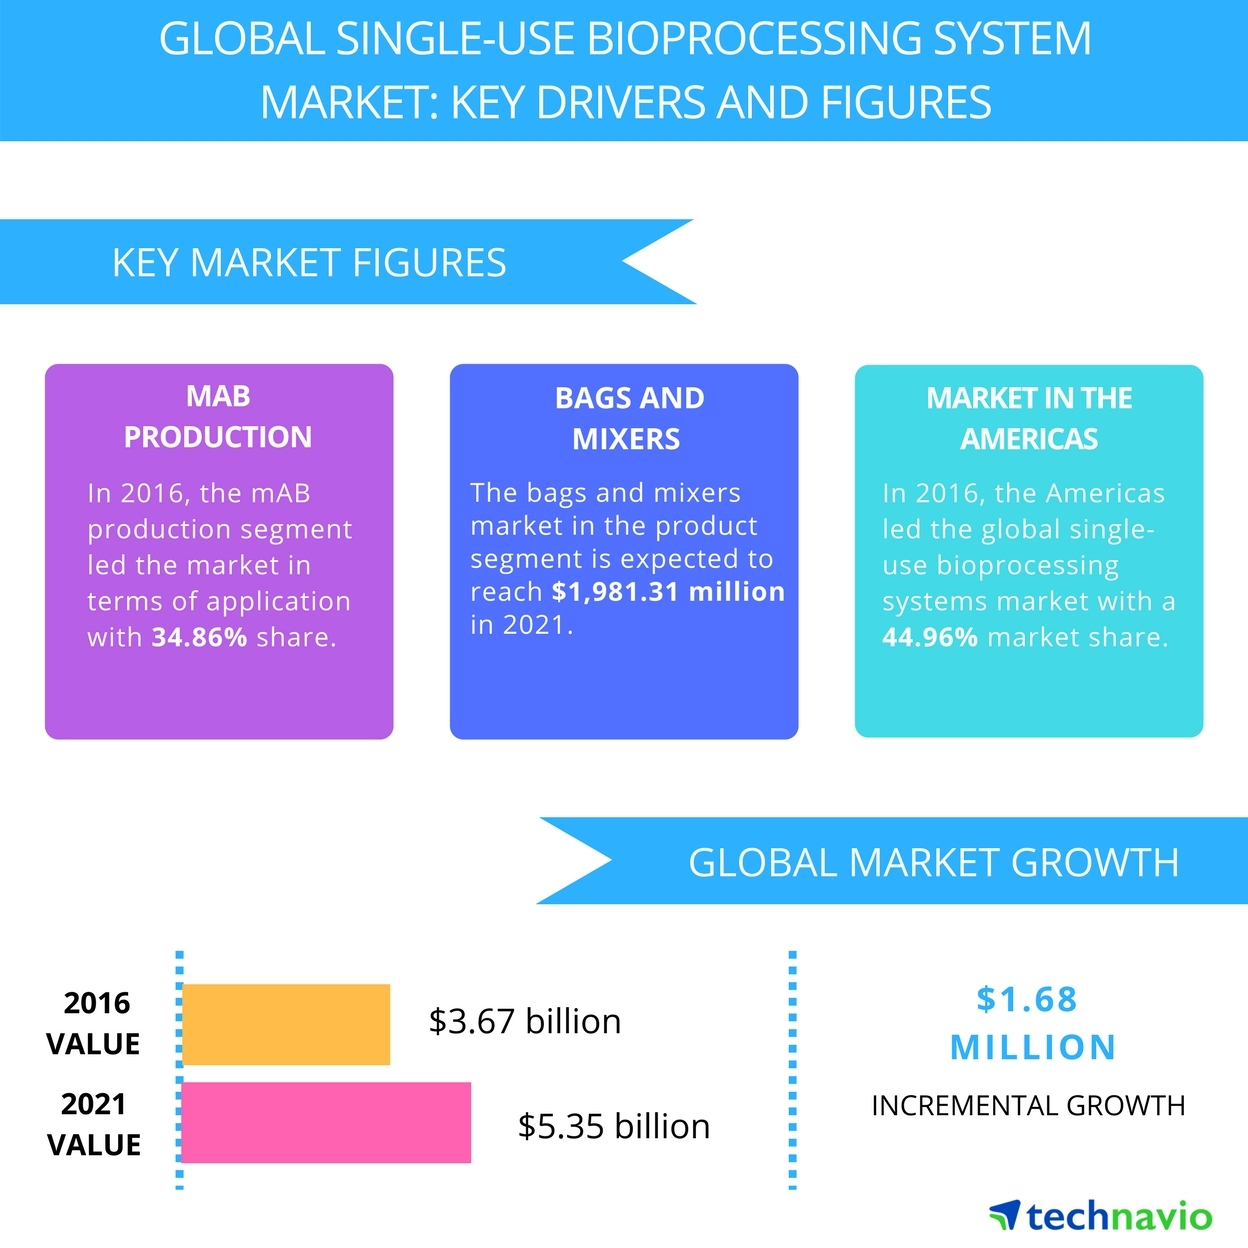 Technavio has published a new report on the global single-use bioprocessing system market from 2017-2021. (Graphic: Business Wire)